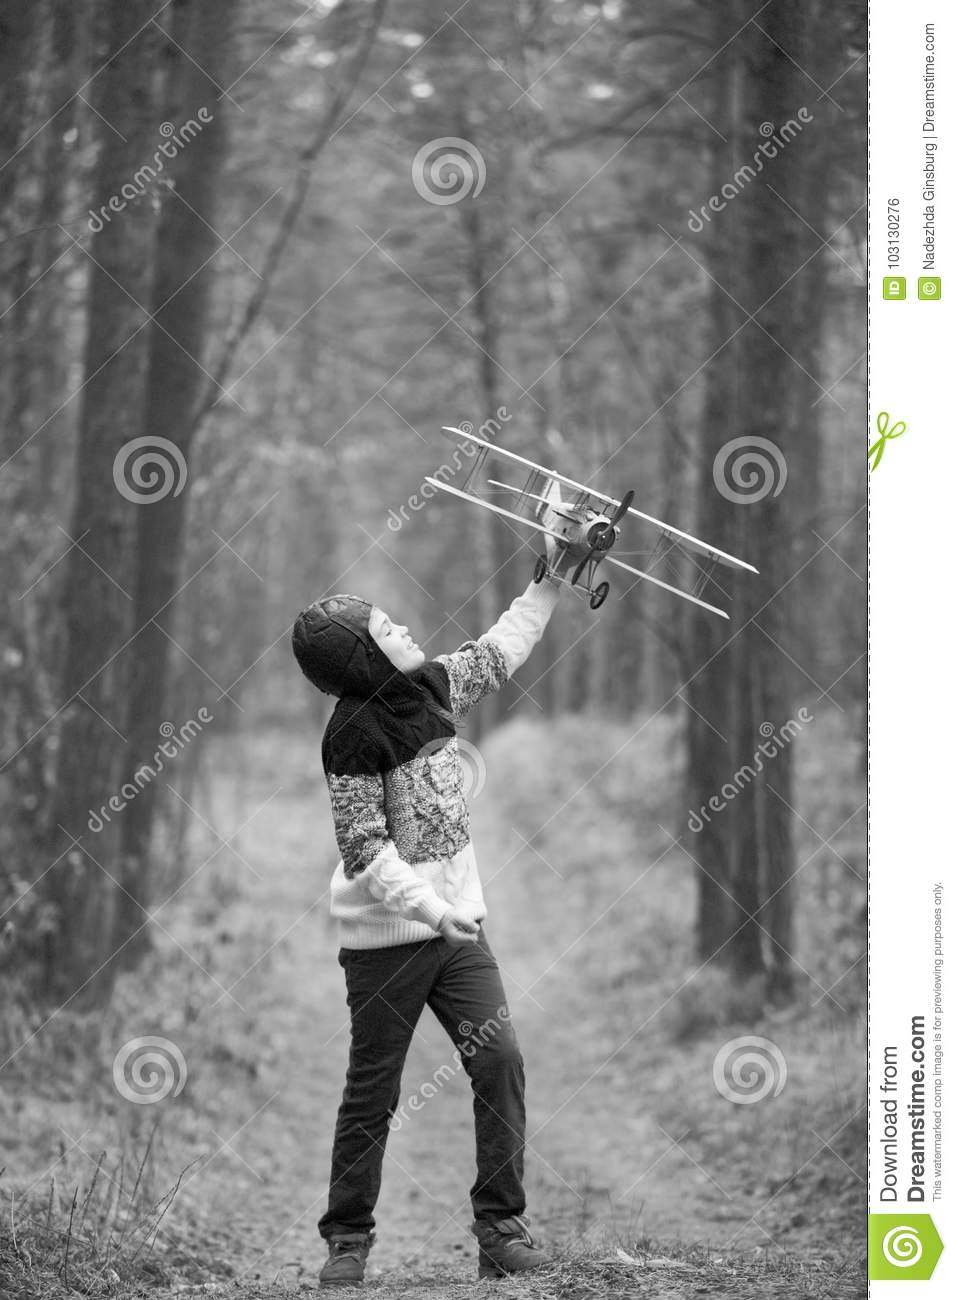 185e6e02 A Boy Plays In The Woods With A Toy Plane. Autumn Games In The W ...